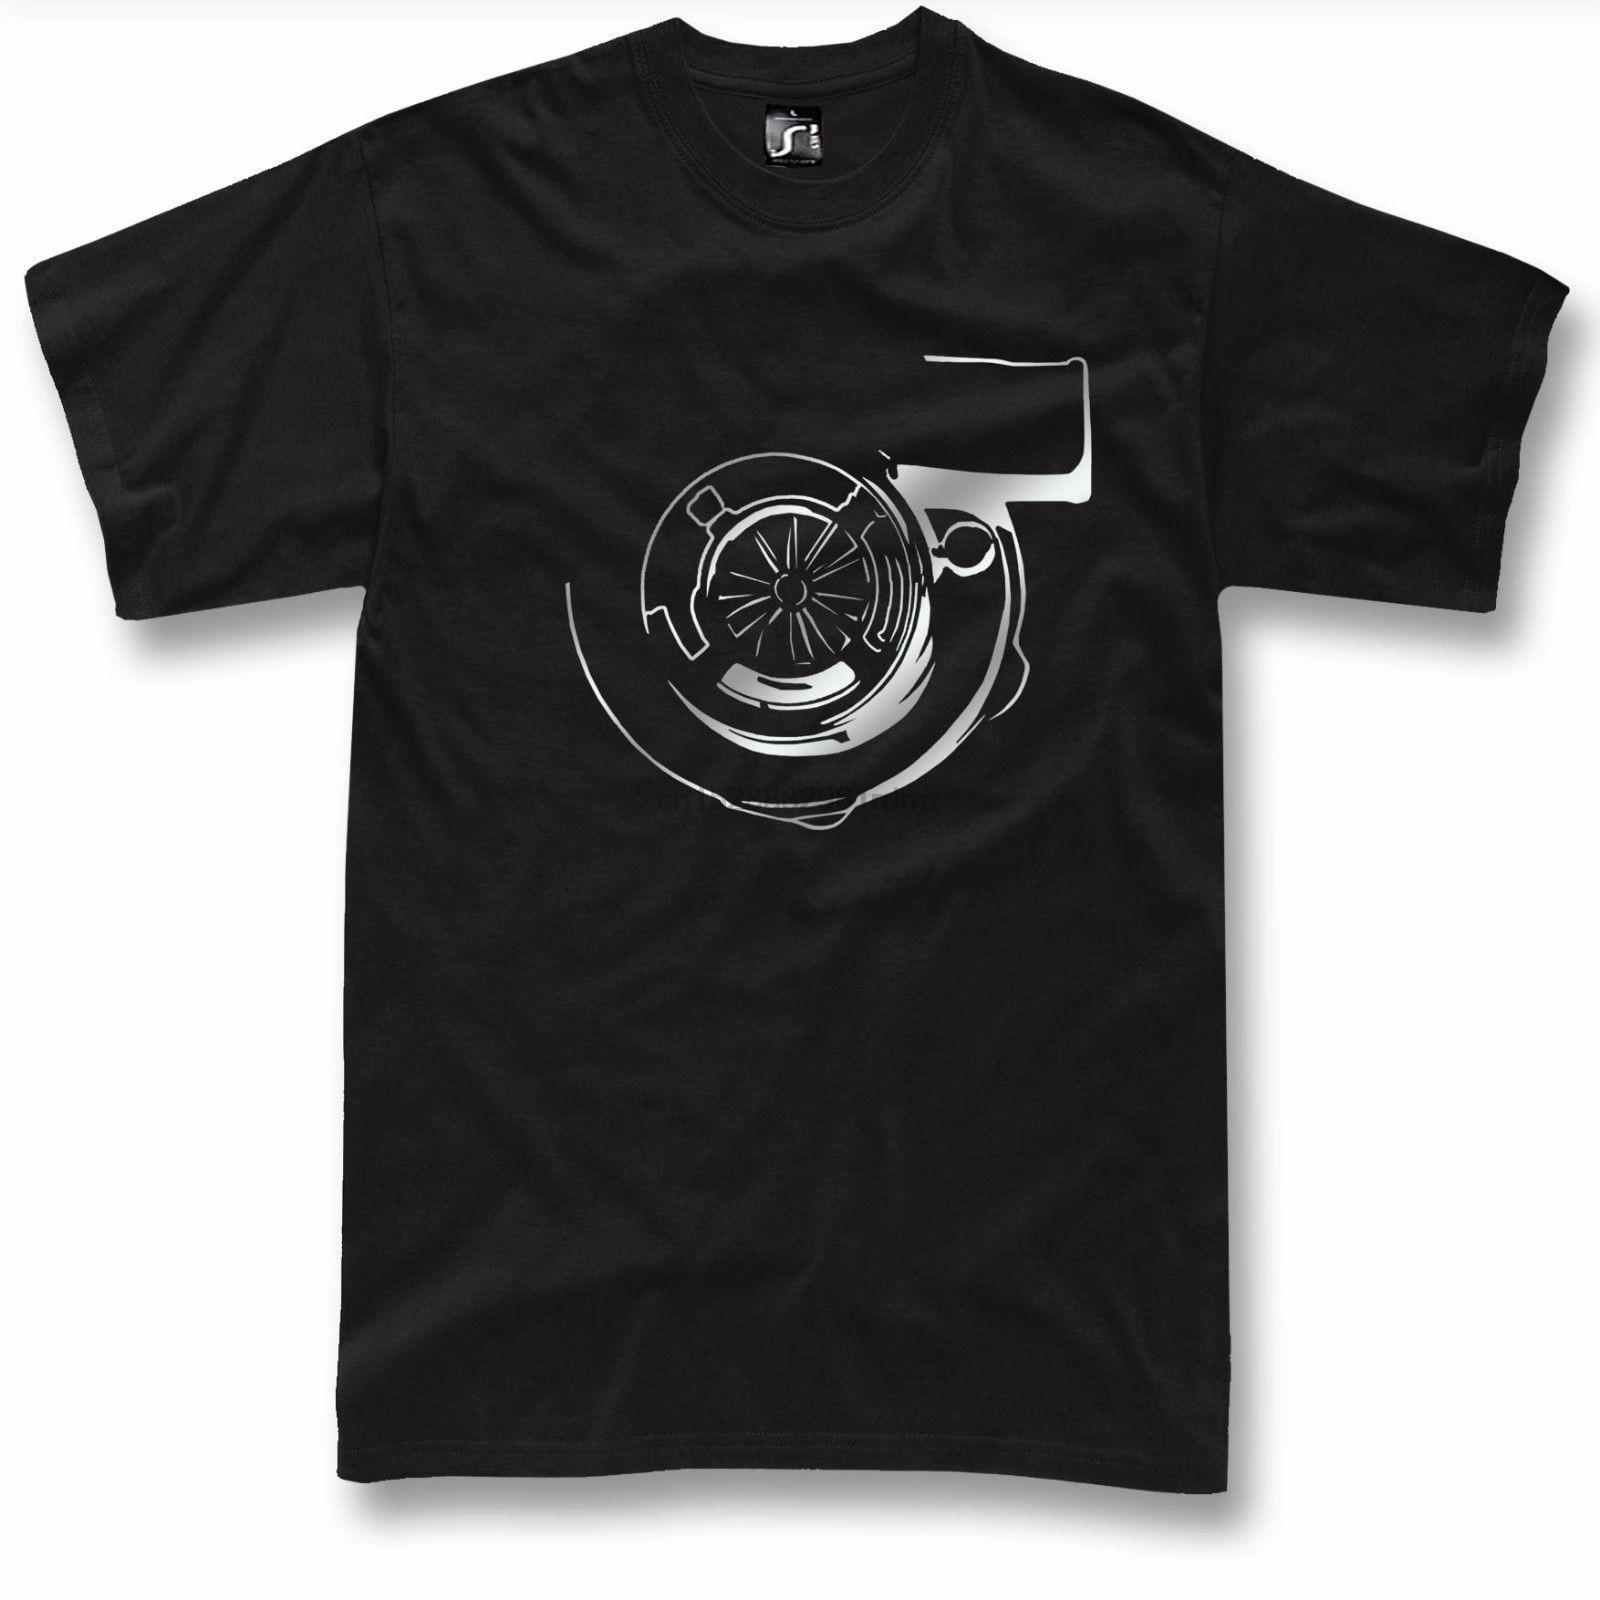 Turbo T Shirt Boost JDM Tuning Drift car NEW Silver Graphic design ( S - 5XL ) Fashion Style Men Tee100% Cotton Classic tee